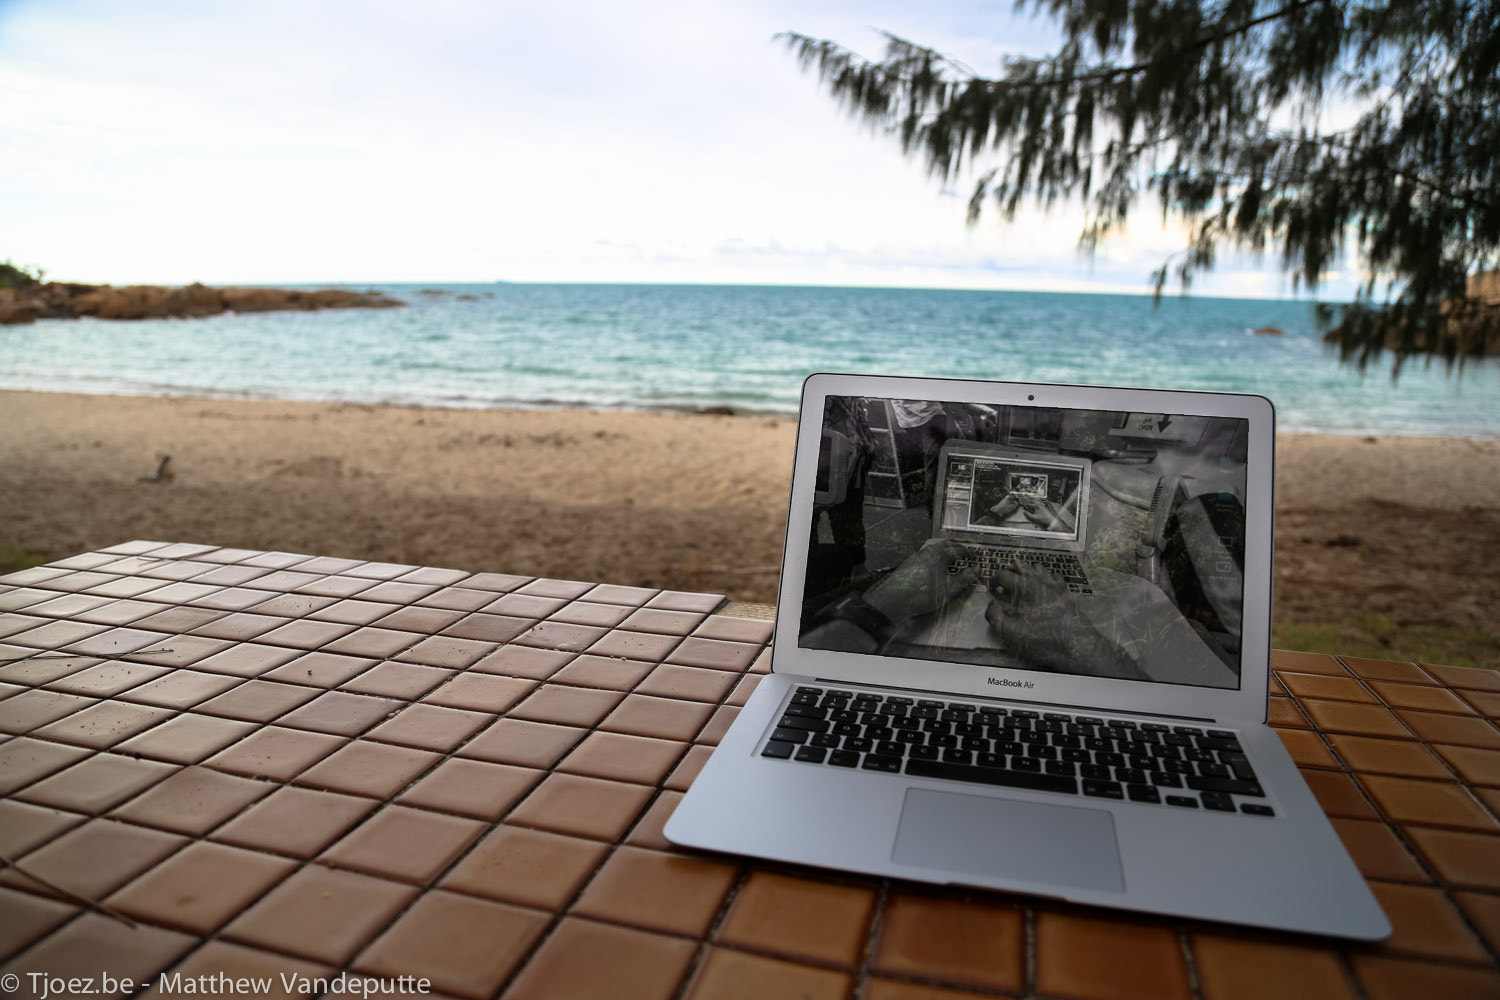 Photograph Editing in paradise. by Matthew Vandeputte on 500px